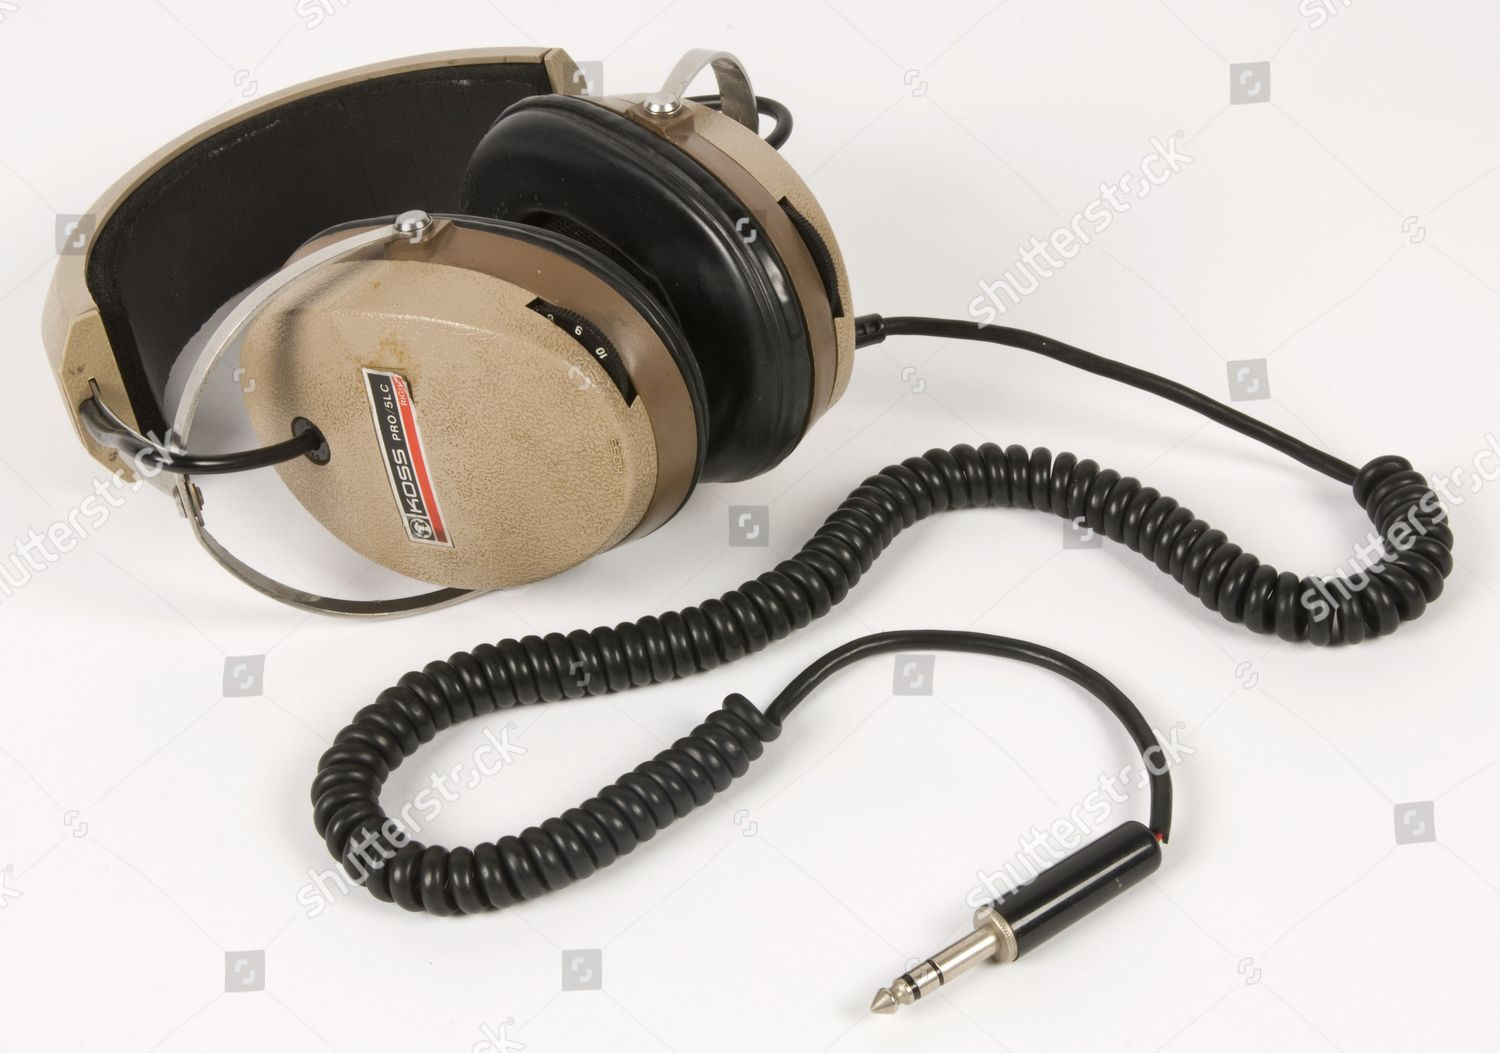 Vintage Audio Gear Shoot Stock Image by Classic Rock Magazine for editorial  use, May 5, 2011